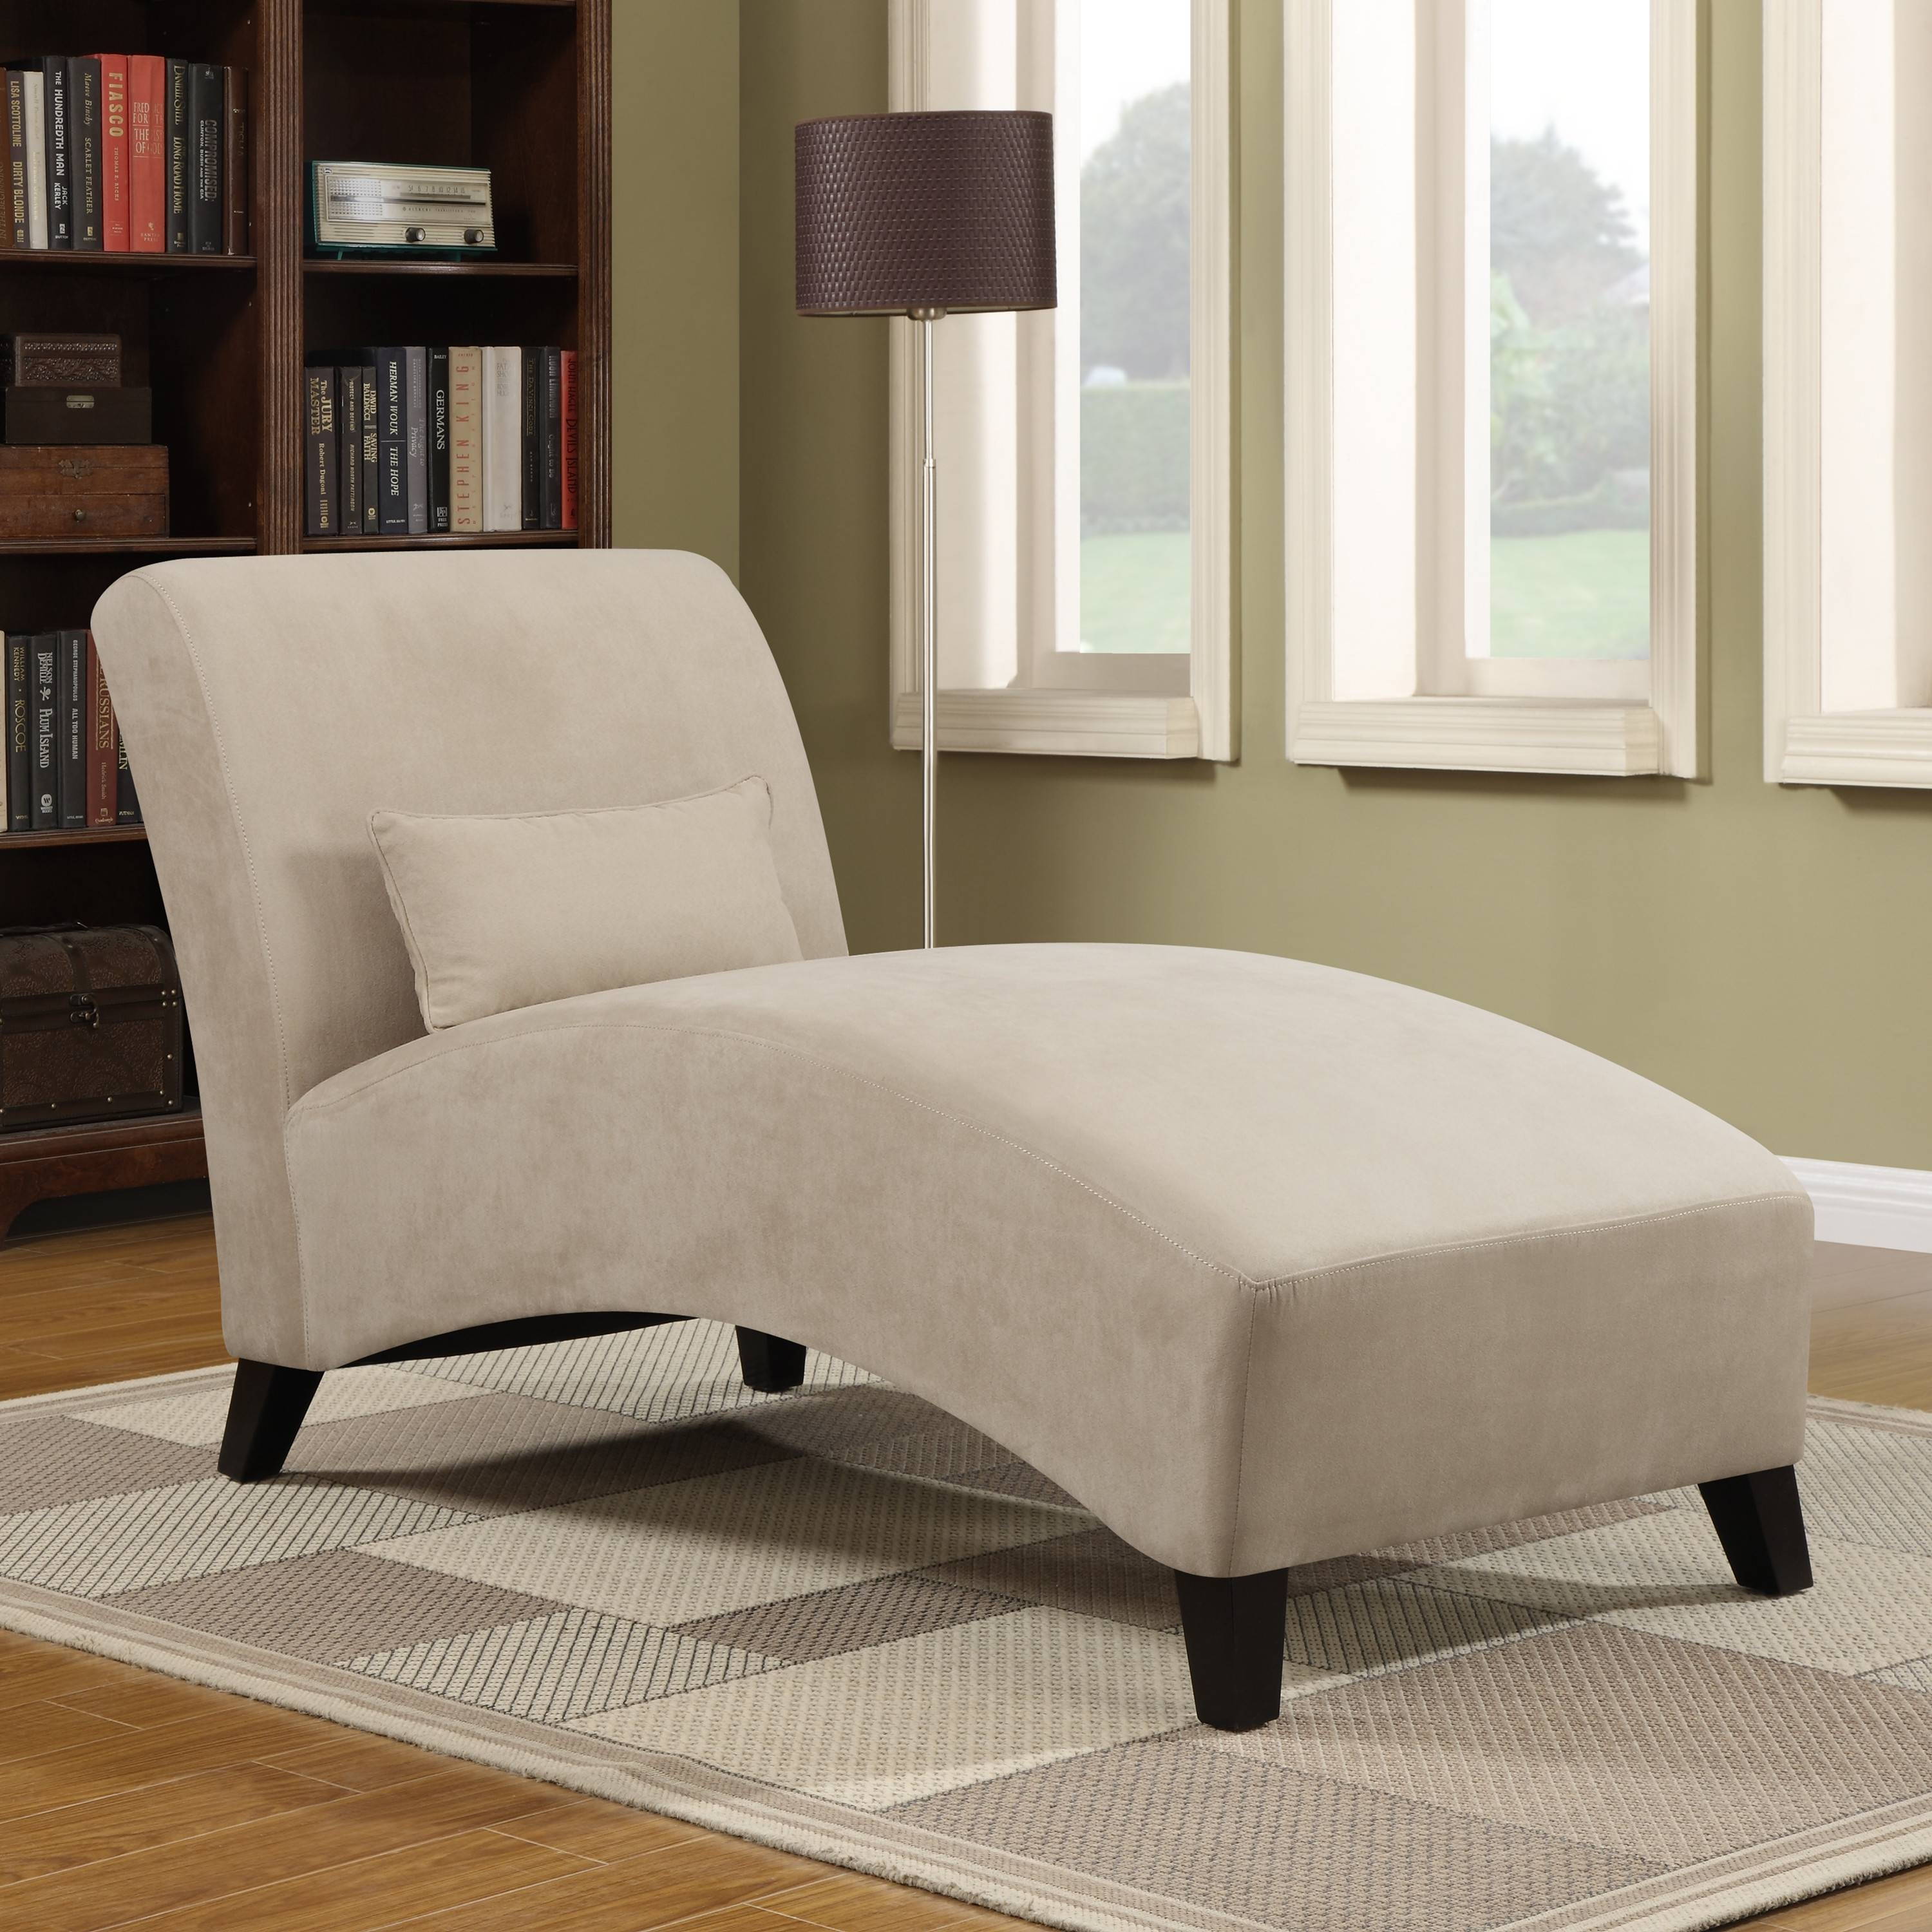 Furniture: Microfiber Chaise Lounge For Comfortable Sofa Design for Sofa Lounge Chairs (Image 14 of 30)